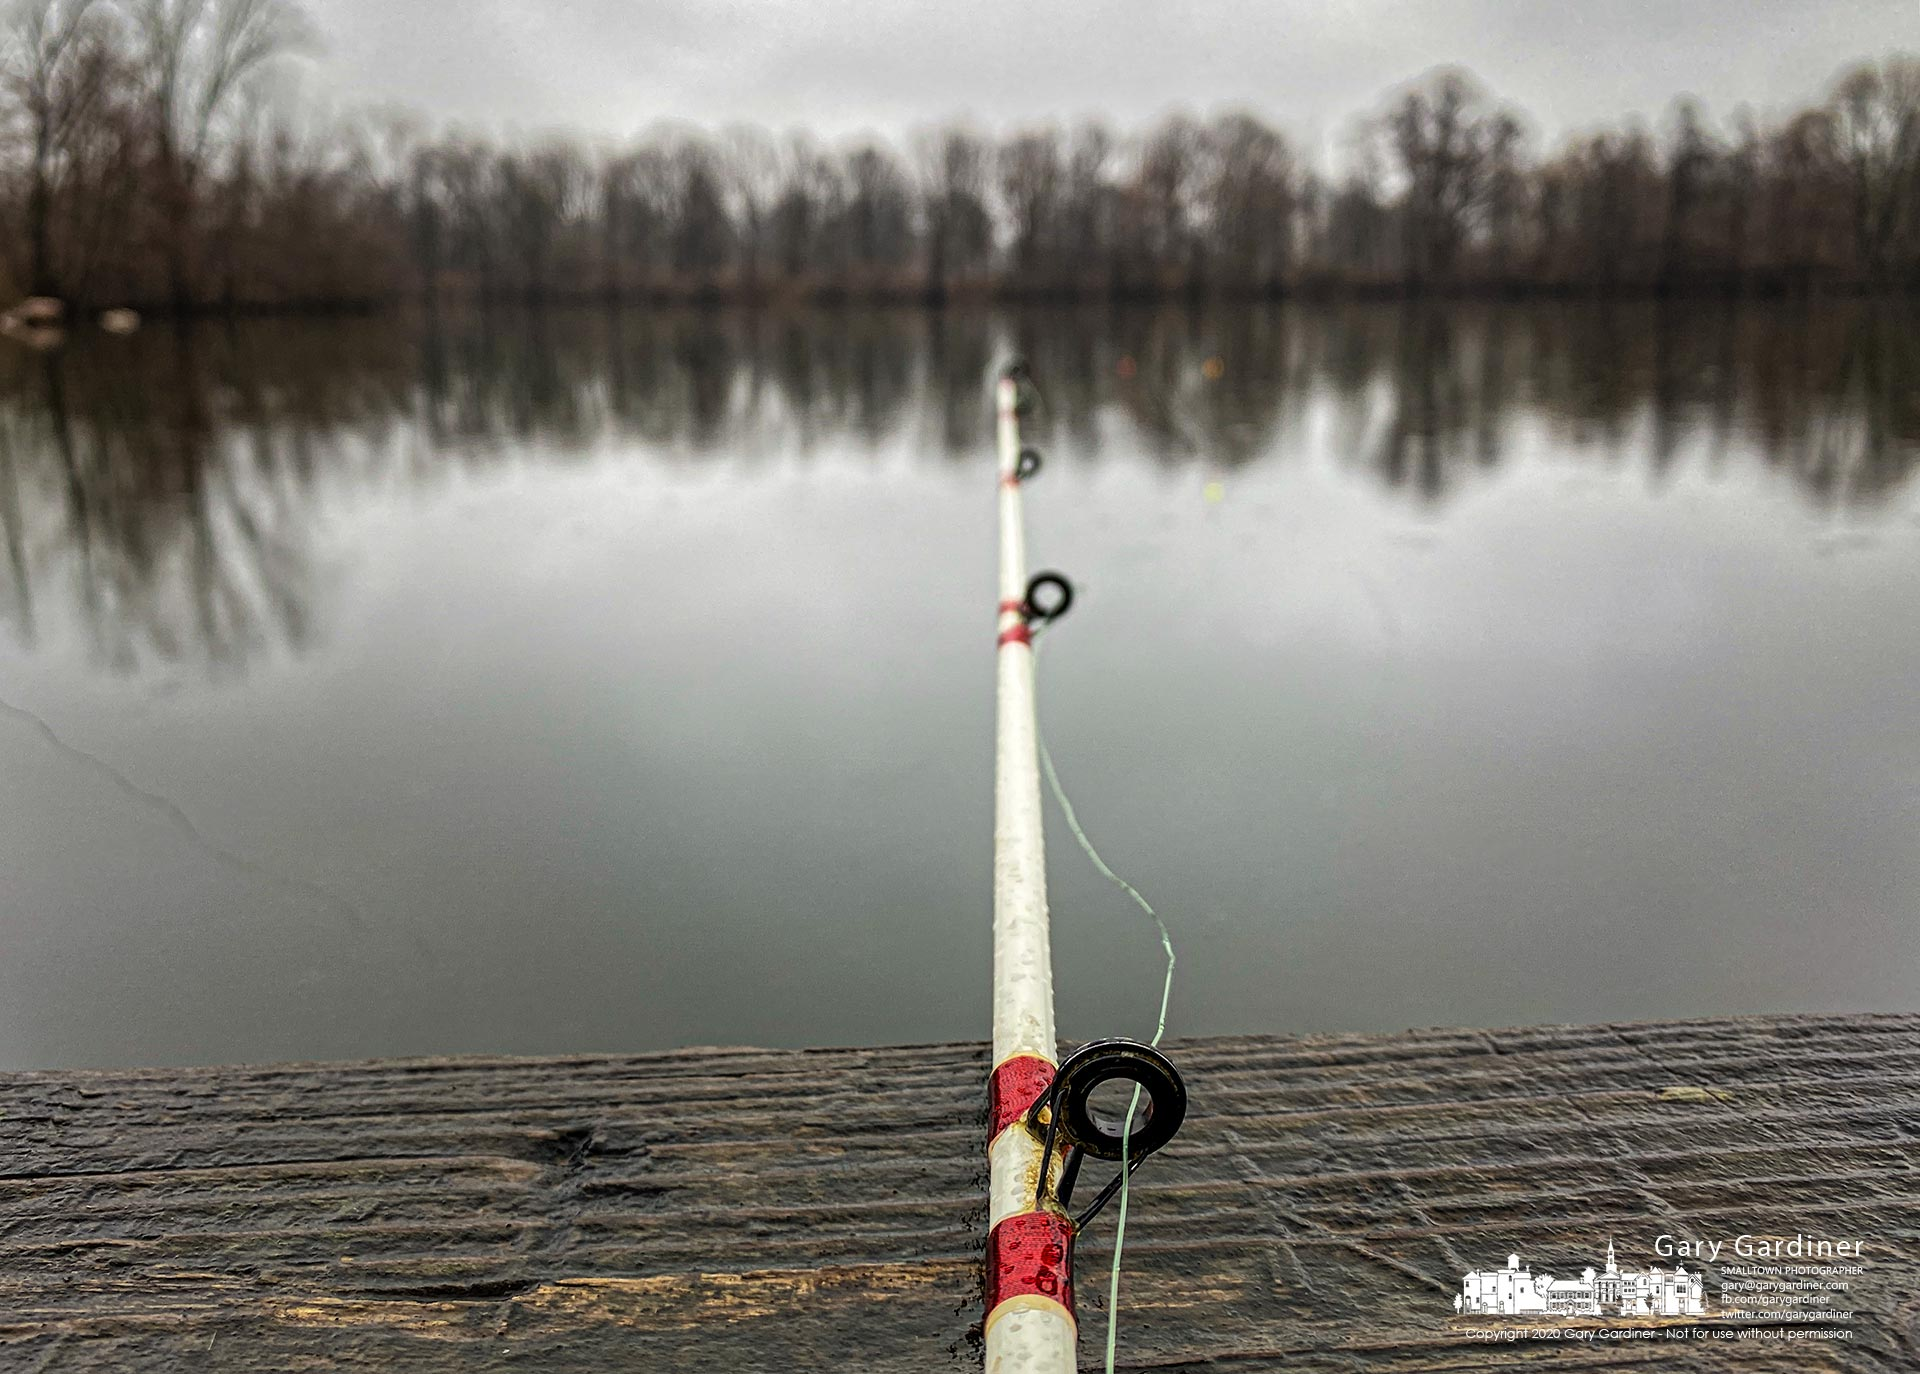 A slack line indicates both the stillness of the waters at Schrock Lake and this fisherman's success on a rainy Friday afternoon. My Final Photo for Jan. 3, 2020.